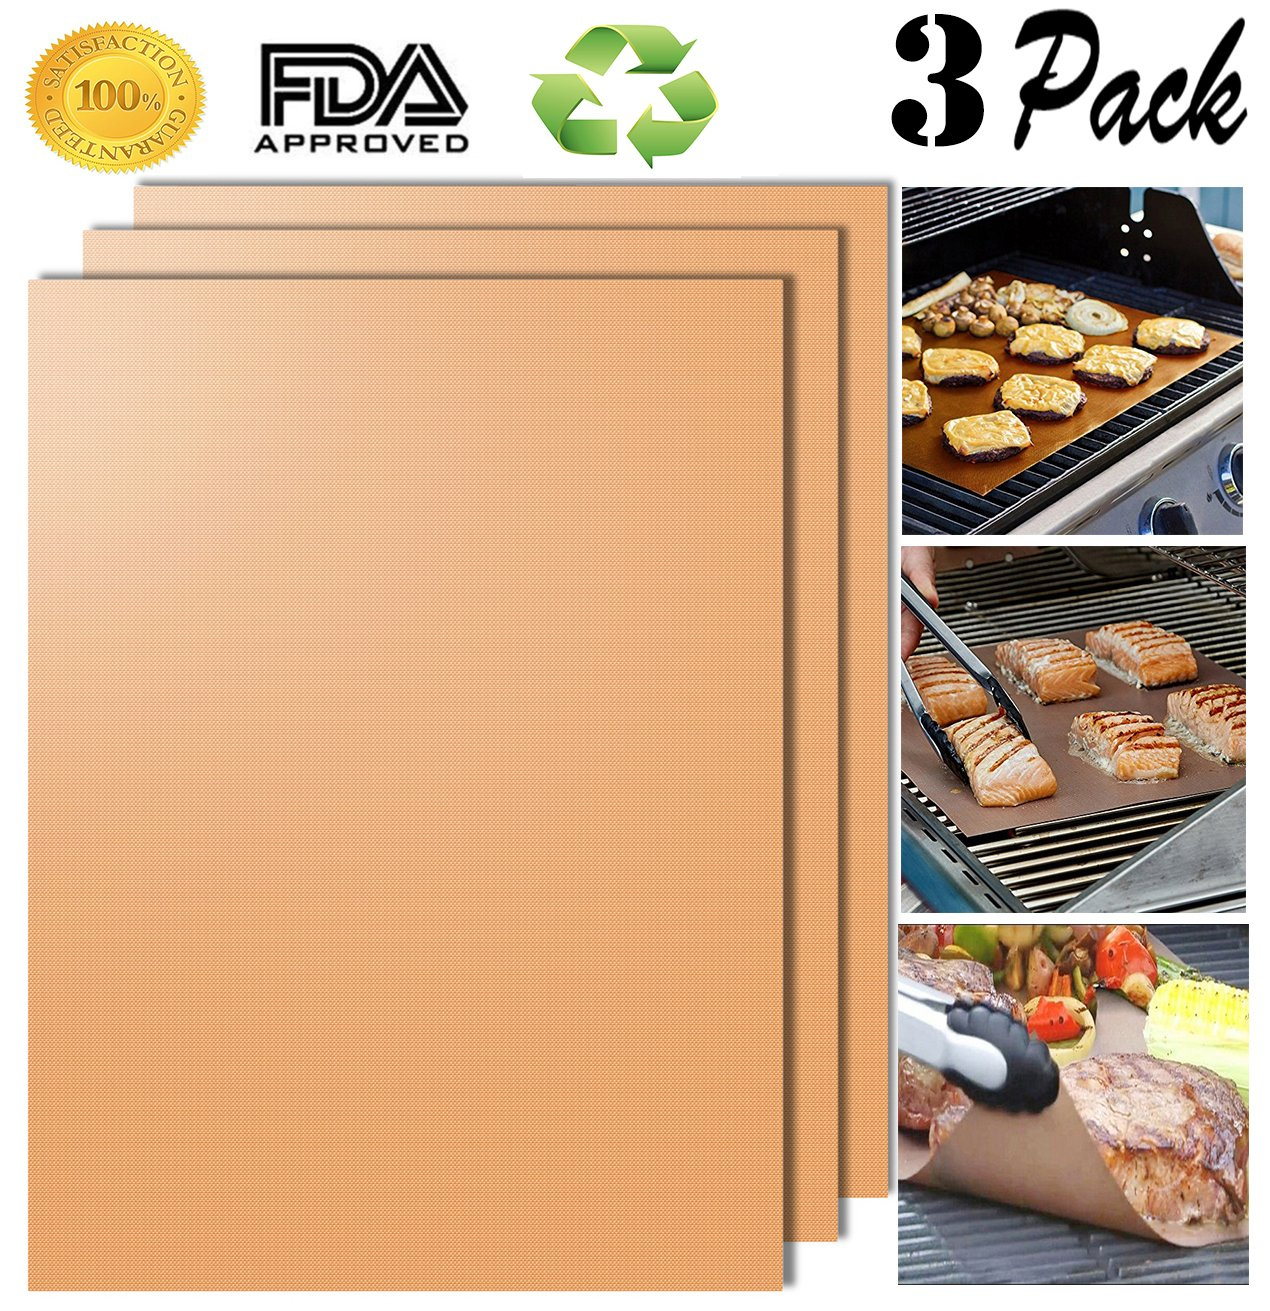 Aoocan Copper Grill Mat Set of 3 - Grill Mats Non Stick ,BBQ Grill & Baking Mats - FDA-Approved,Reusable and Easy to Clean - Works on Gas, Charcoal, Electric Grill